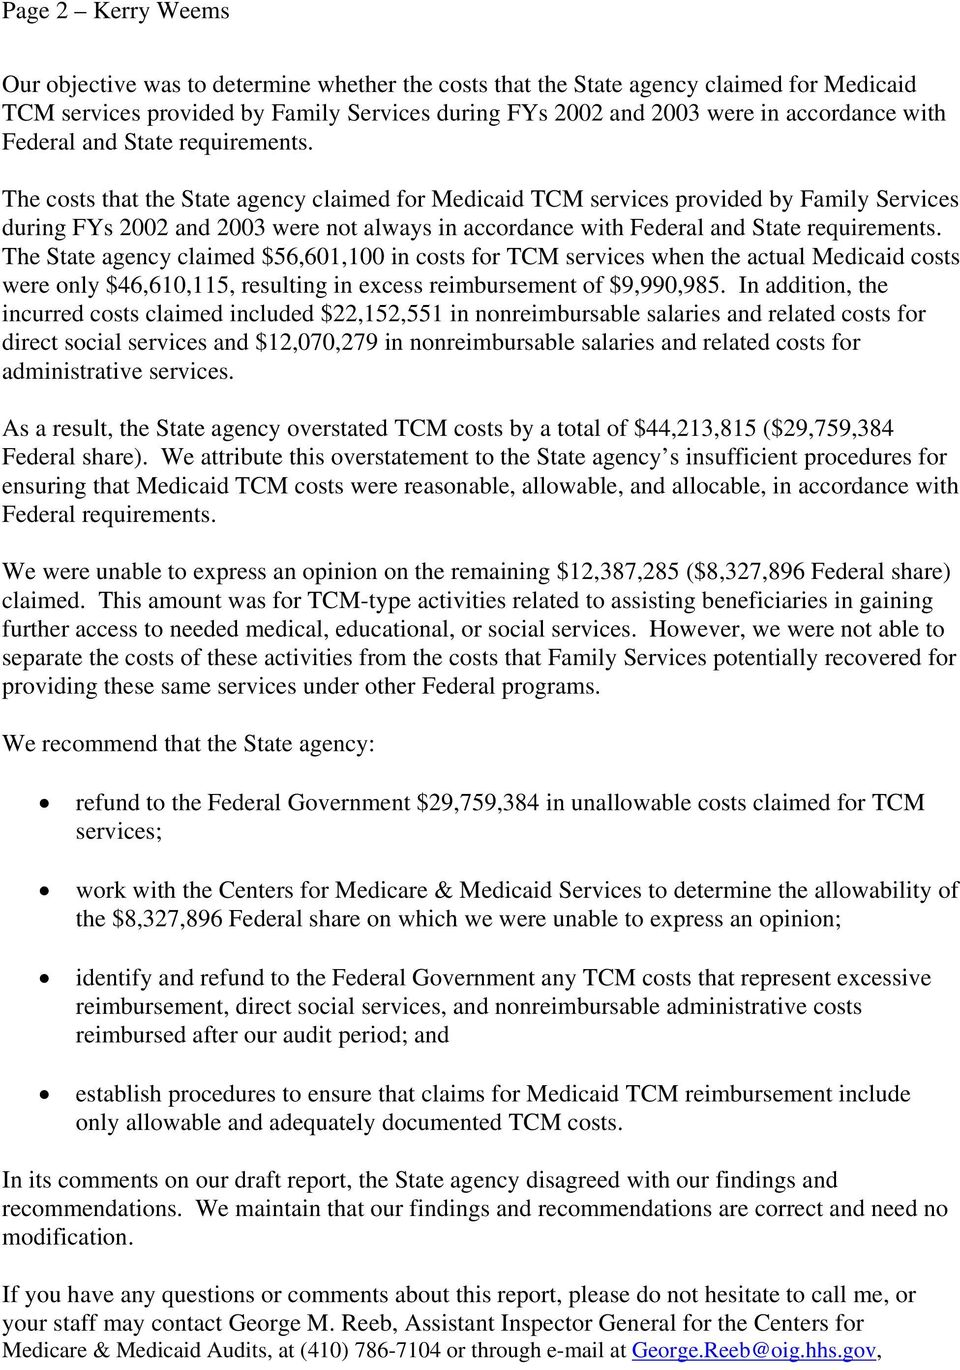 The costs that the State agency claimed for Medicaid TCM services provided by Family Services during FYs 2002 and 2003 were not always in accordance  The State agency claimed $56,601,100 in costs for